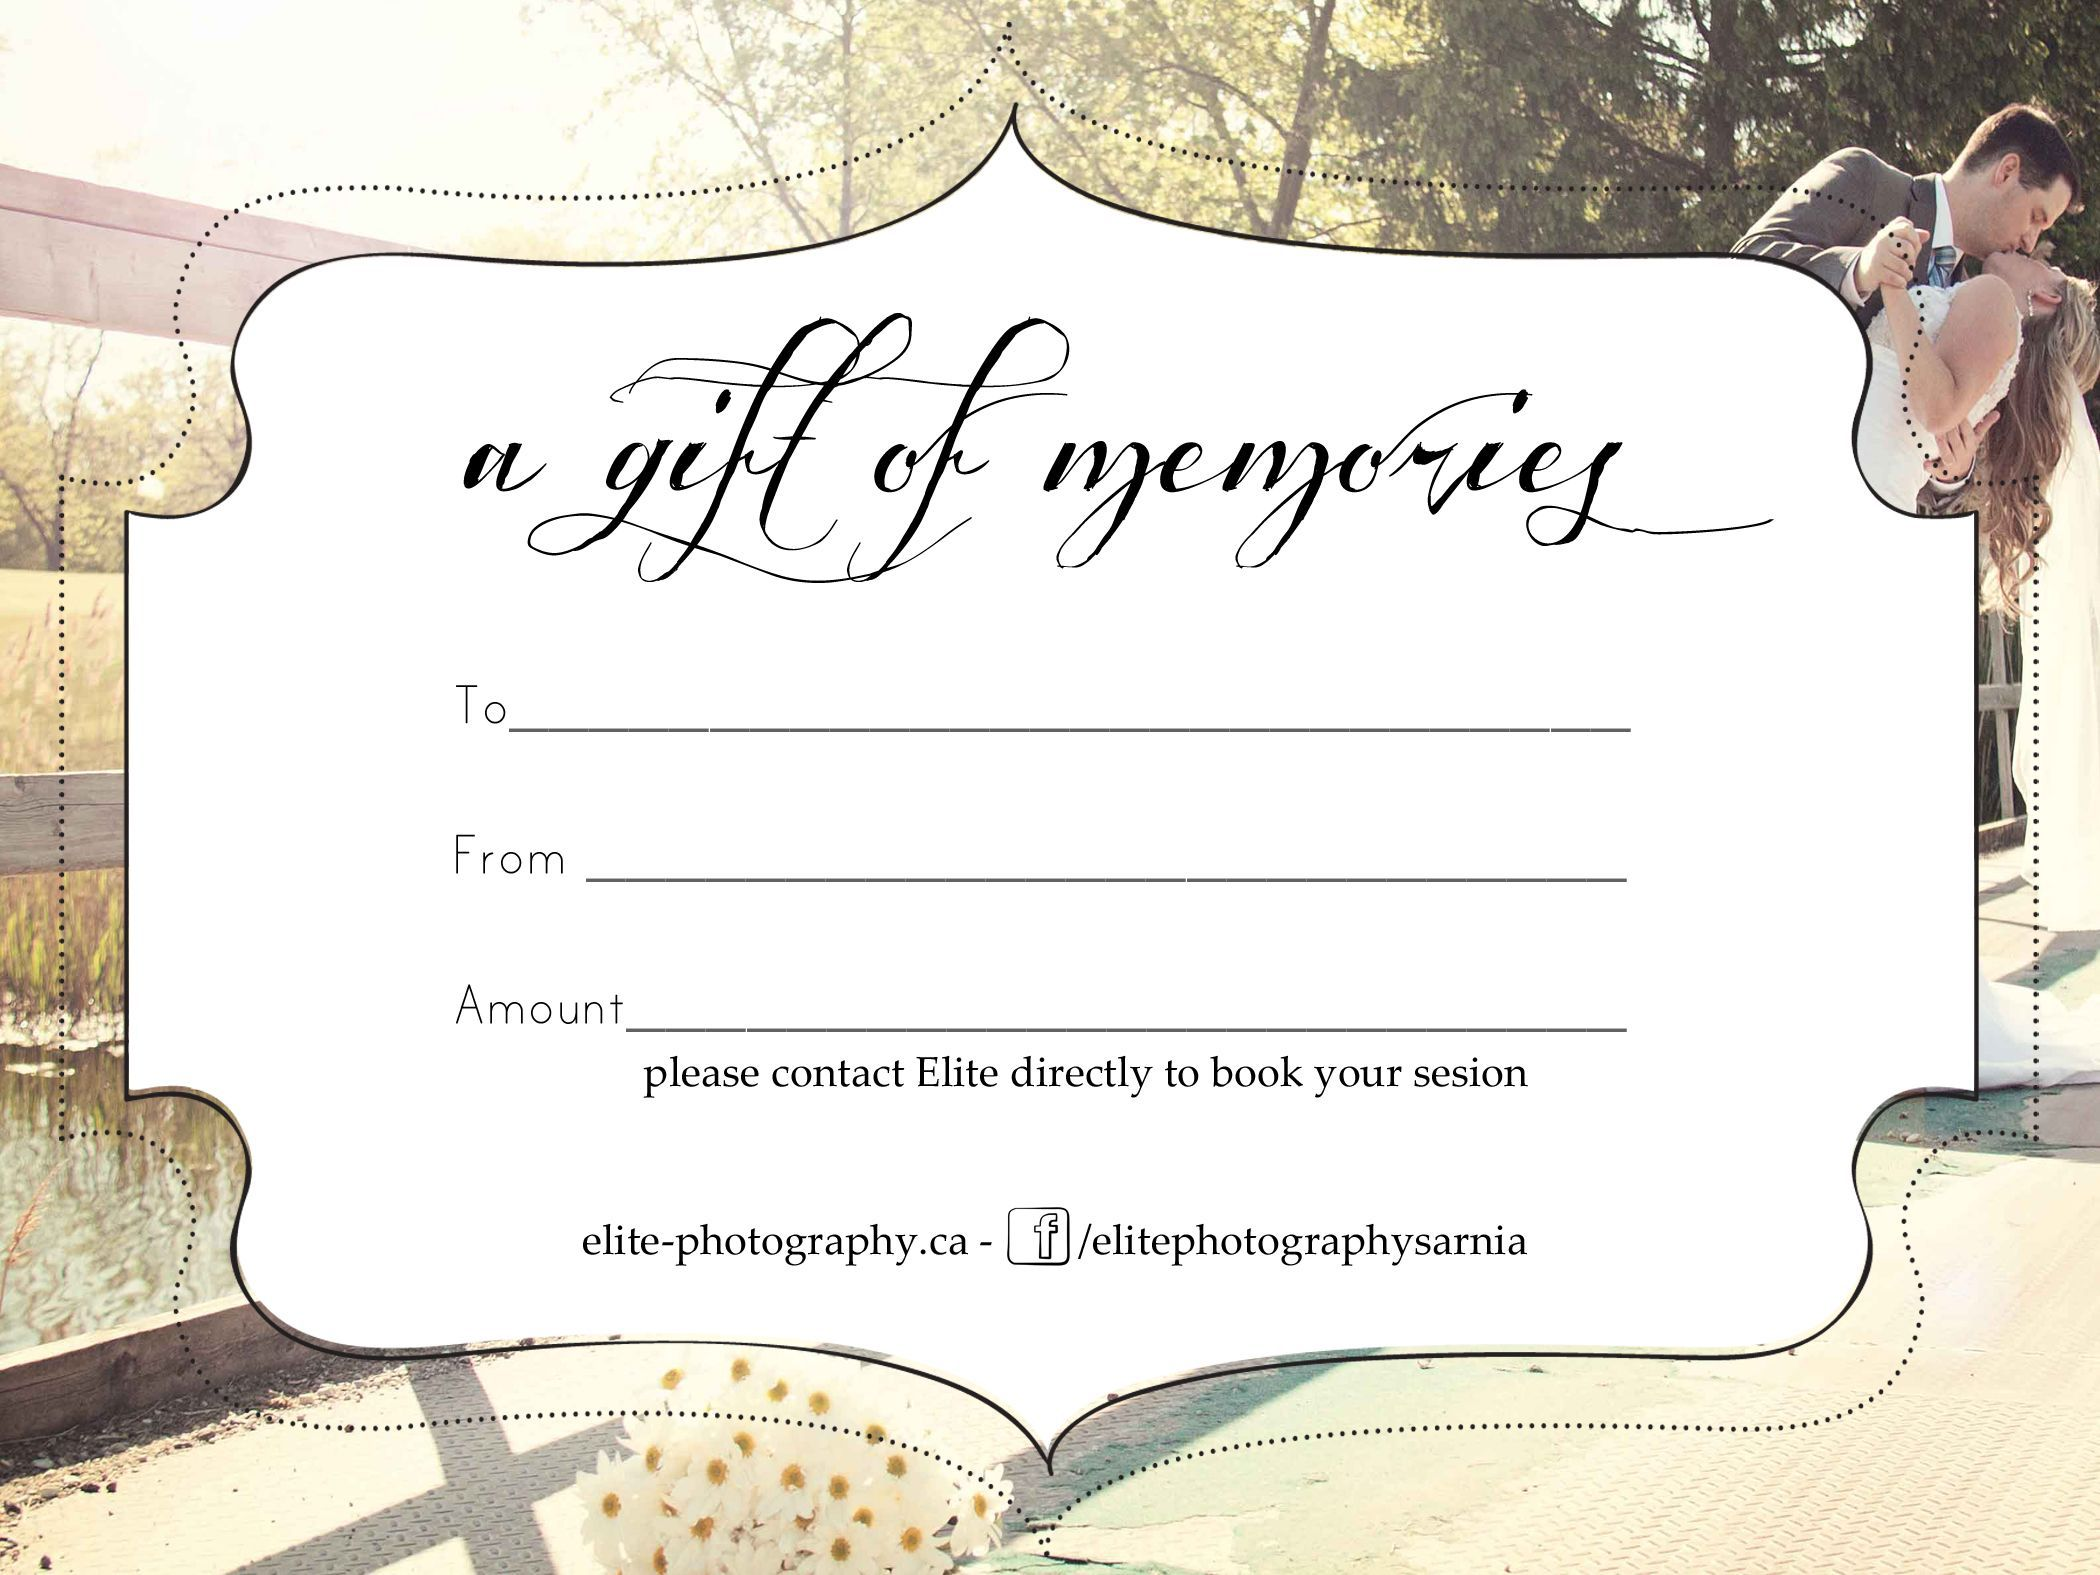 005 Unique Photography Session Gift Certificate Template Highest Quality  Photo Free PhotoshootFull